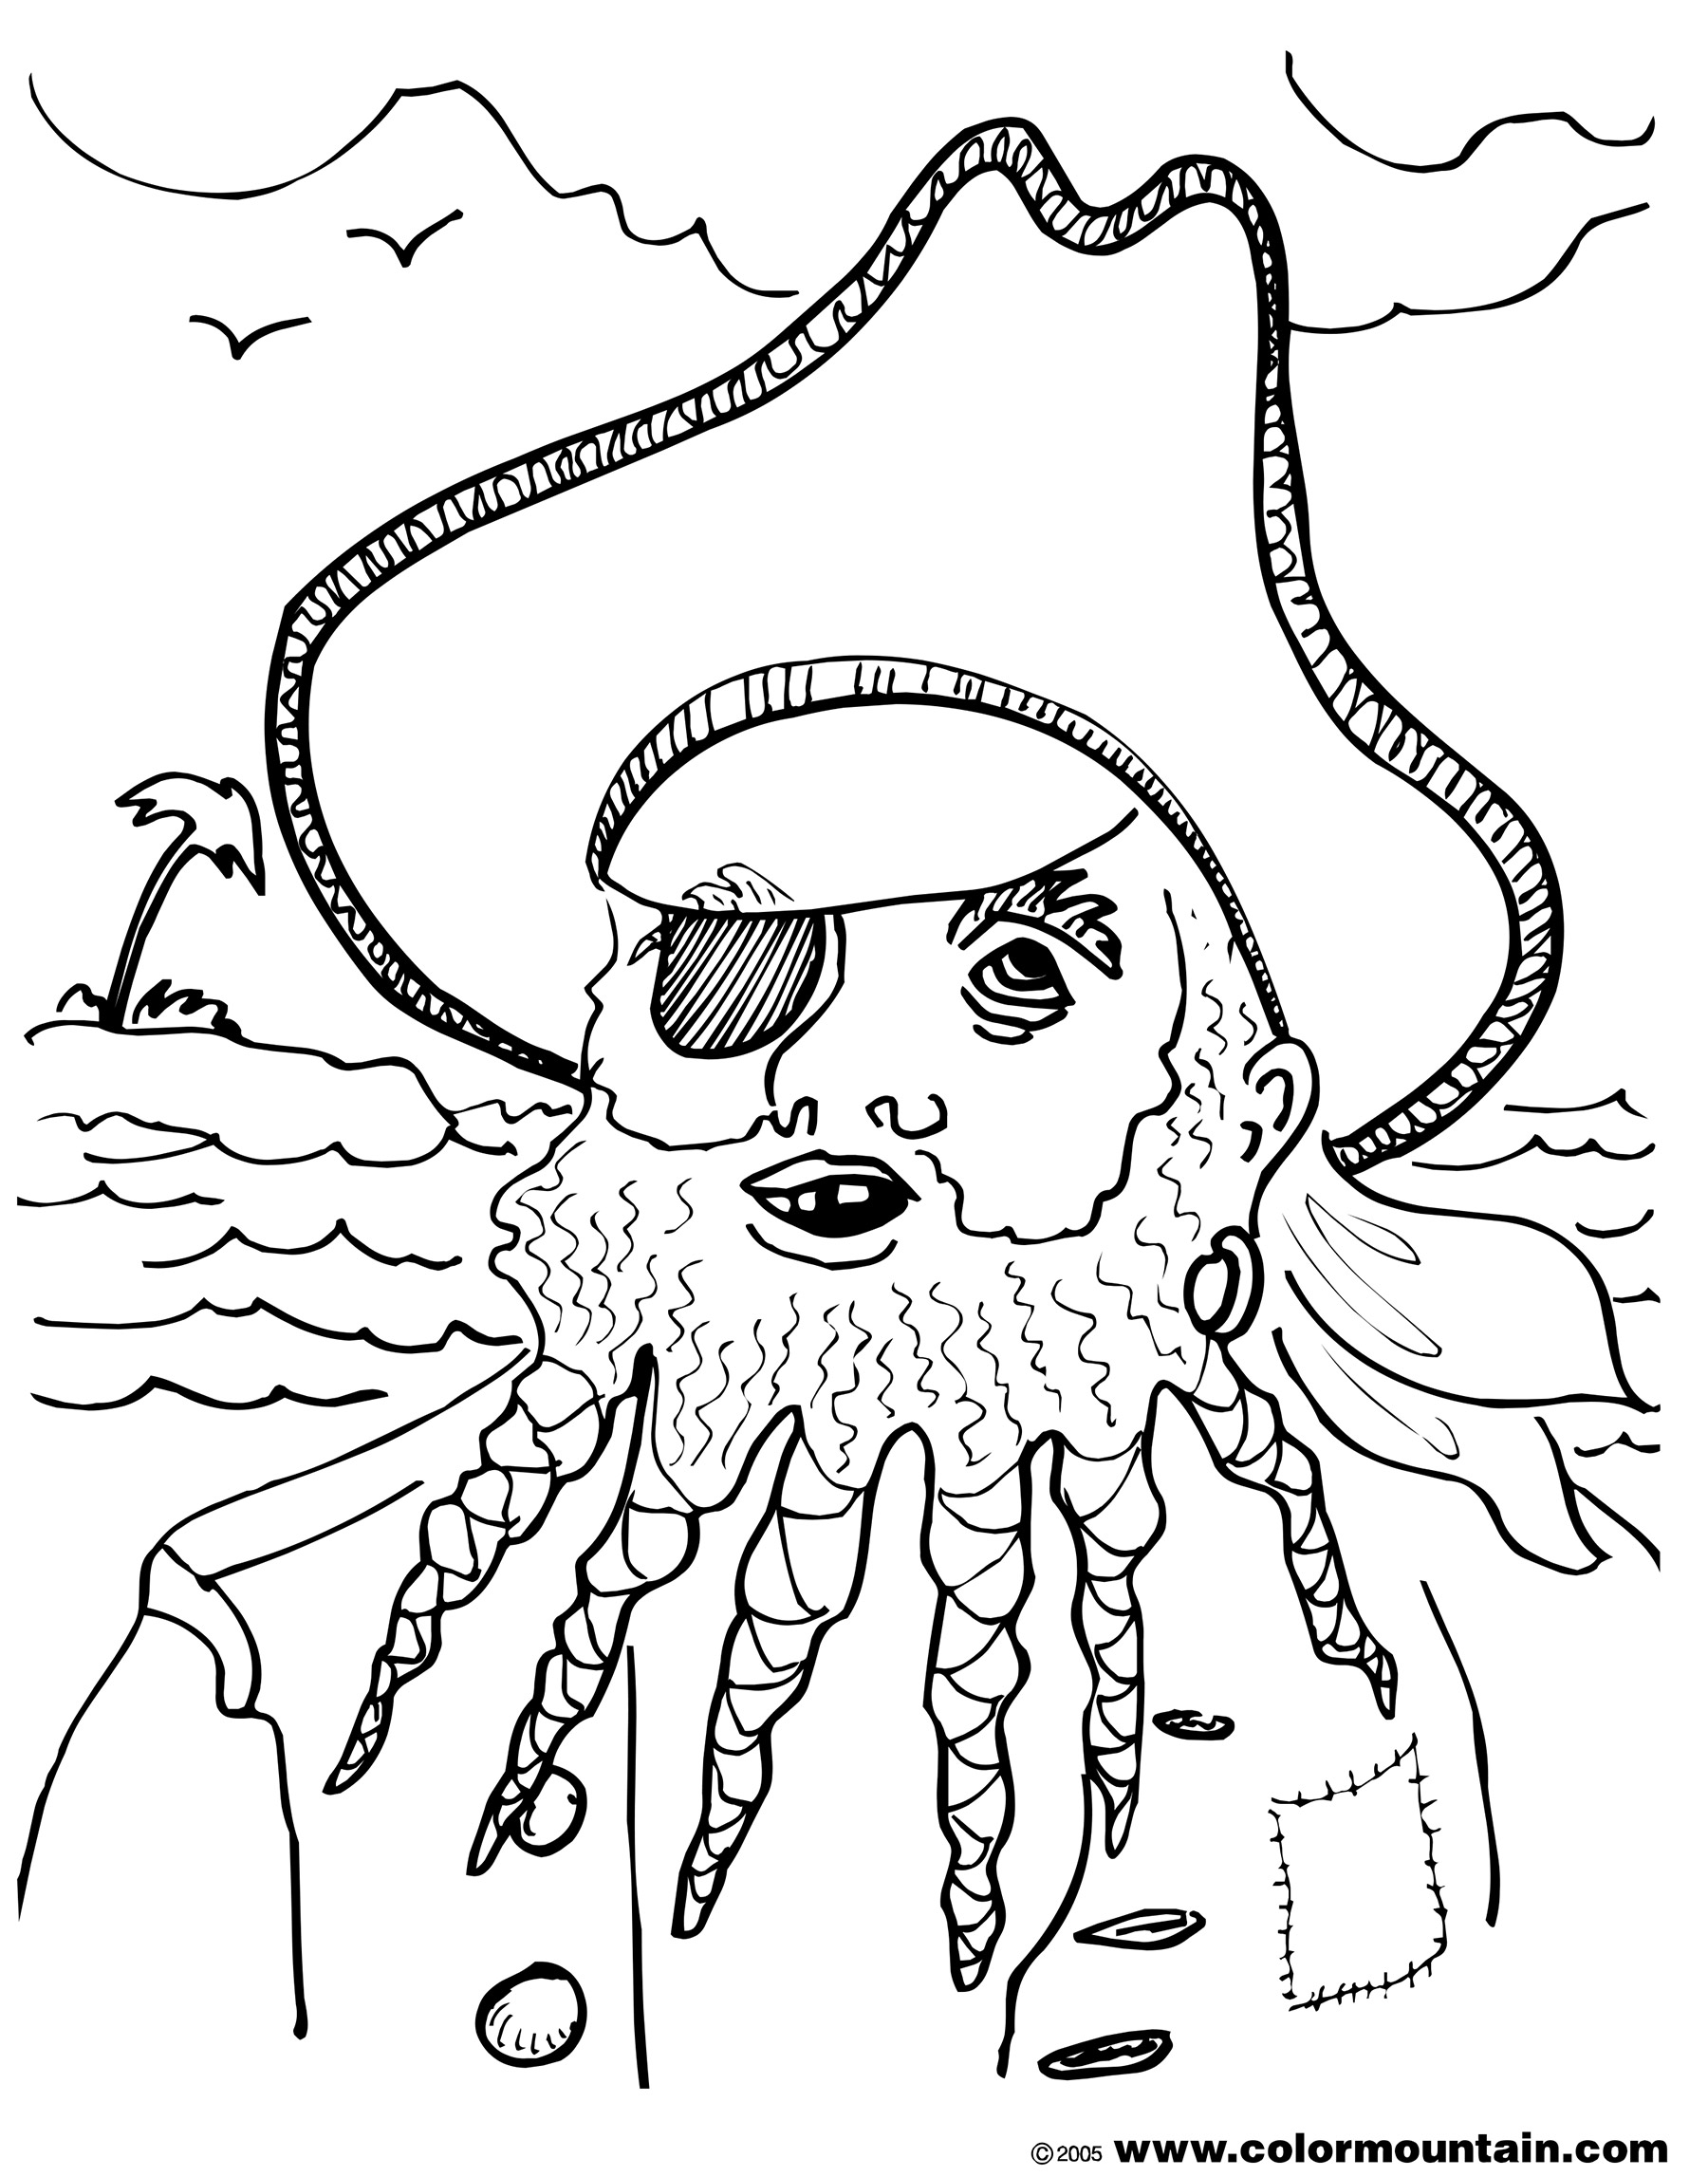 Blackbeard Drawing At Getdrawings